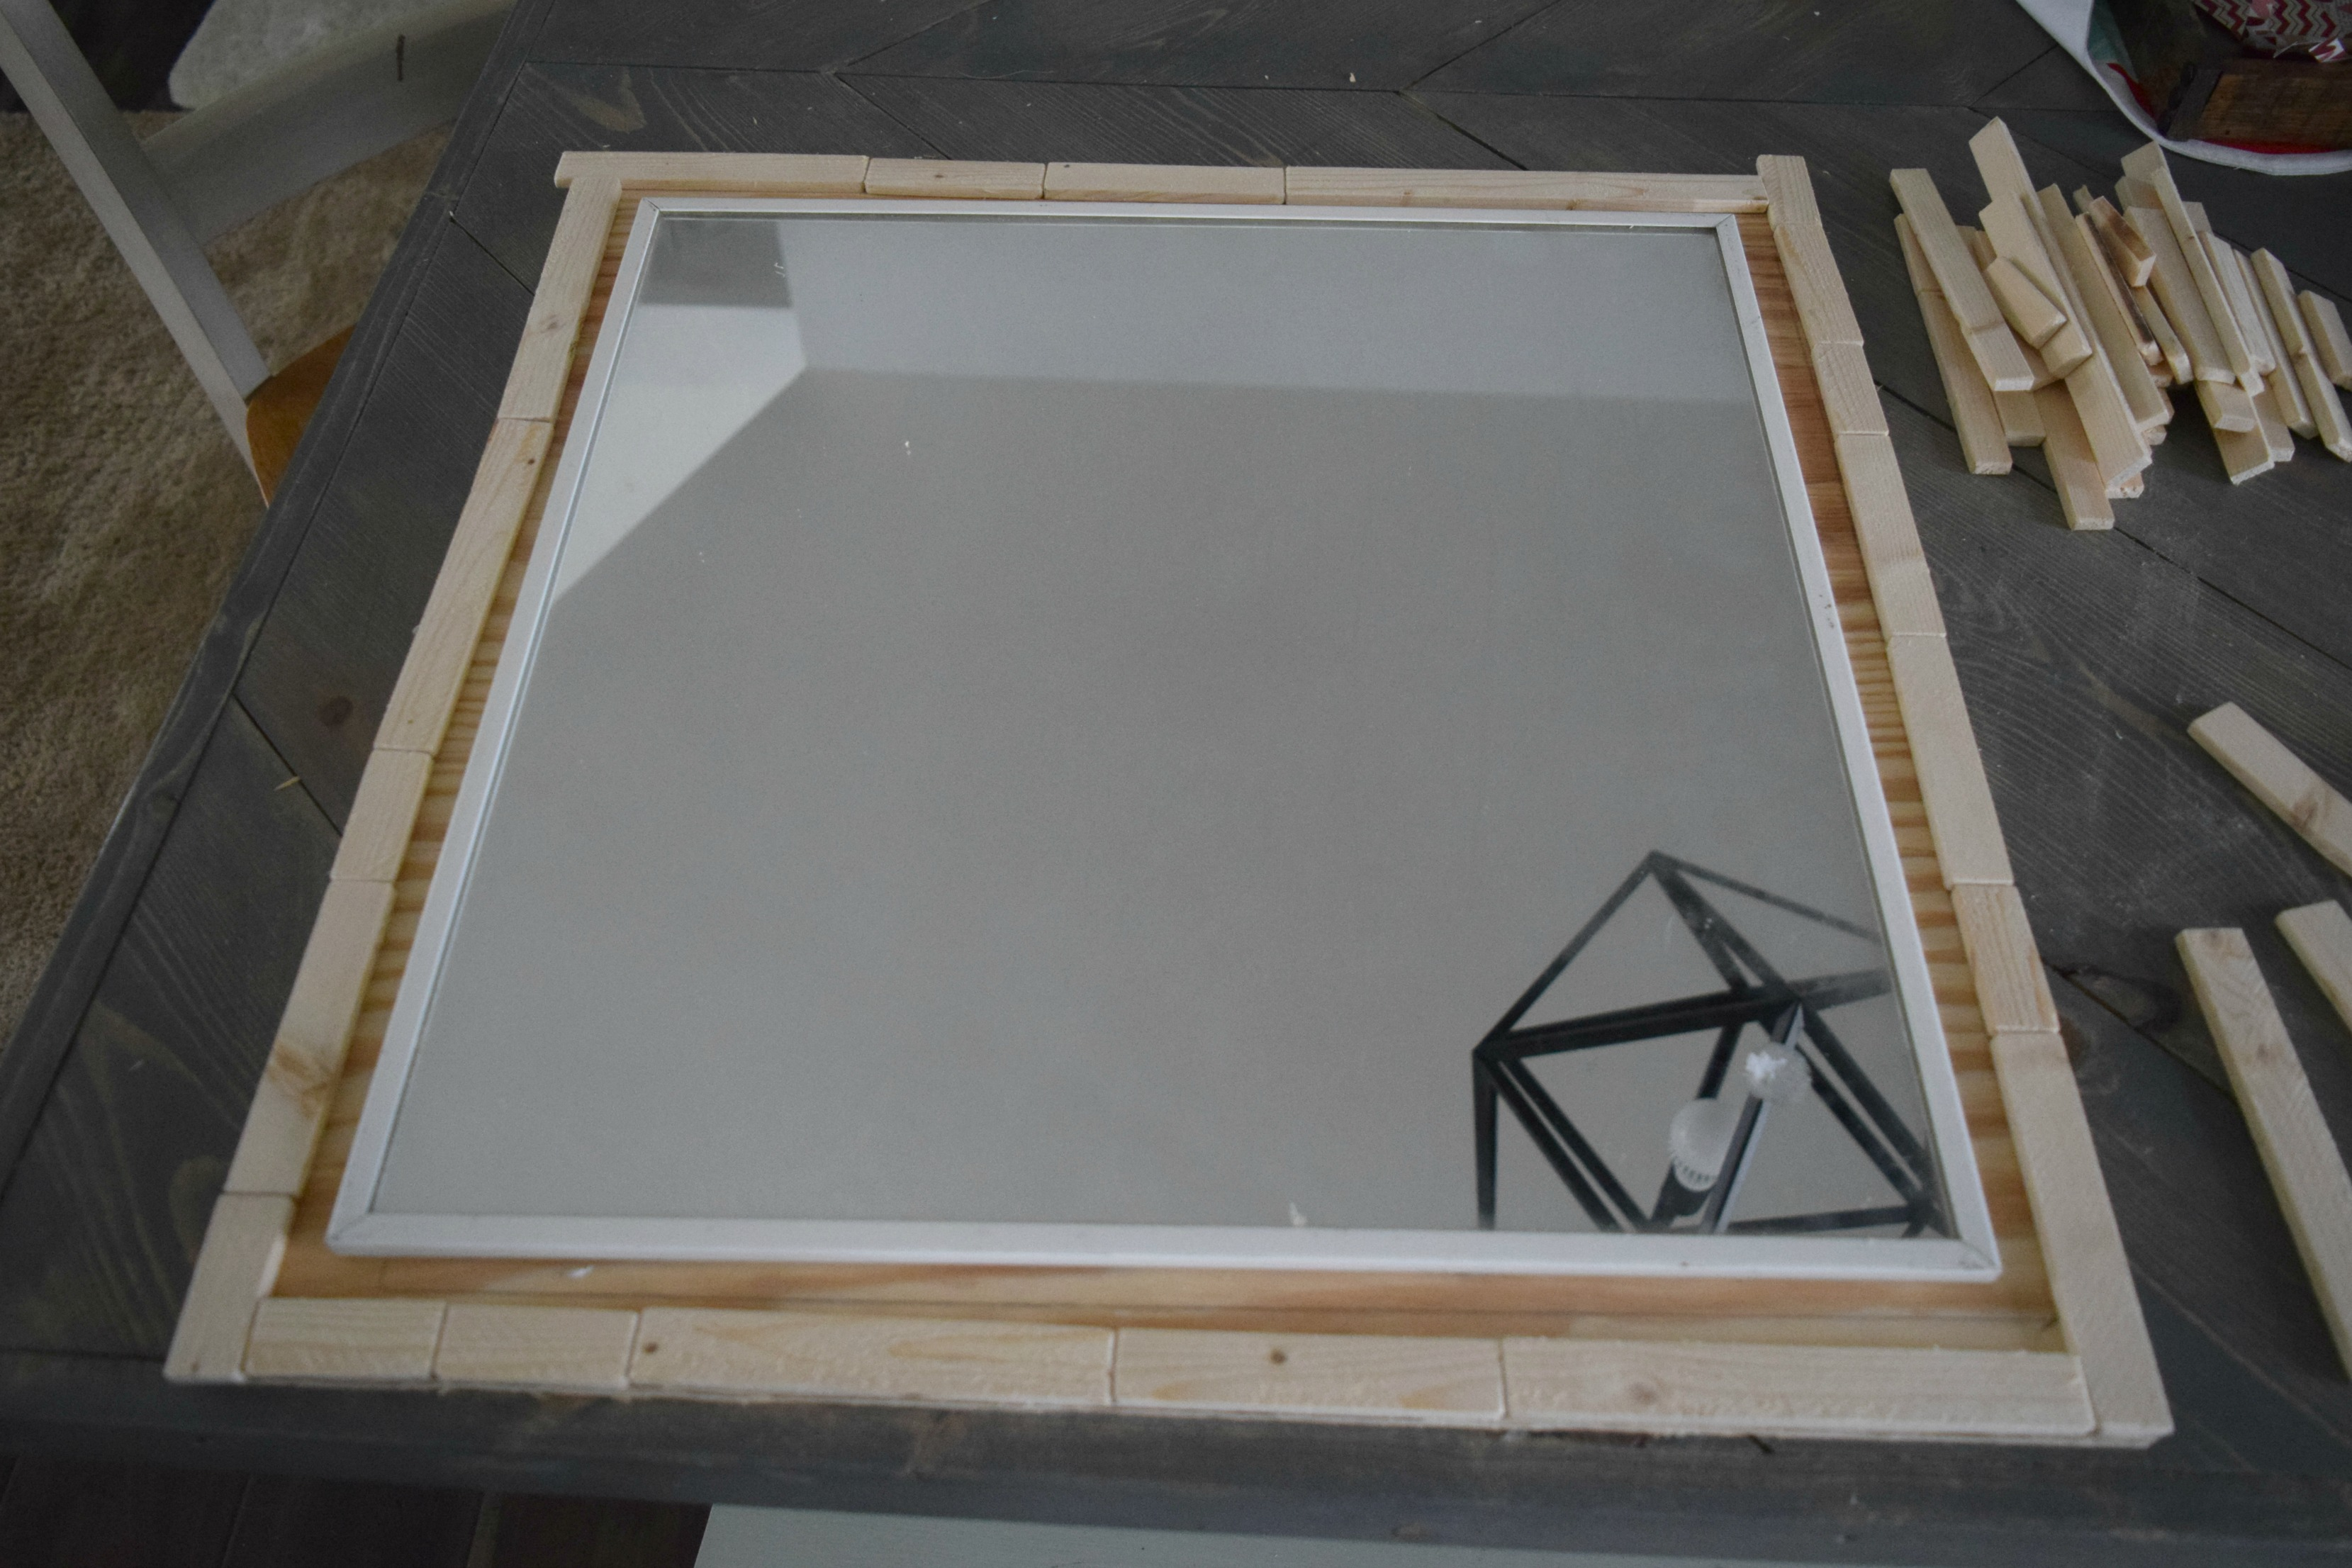 lining up wood mirror frame